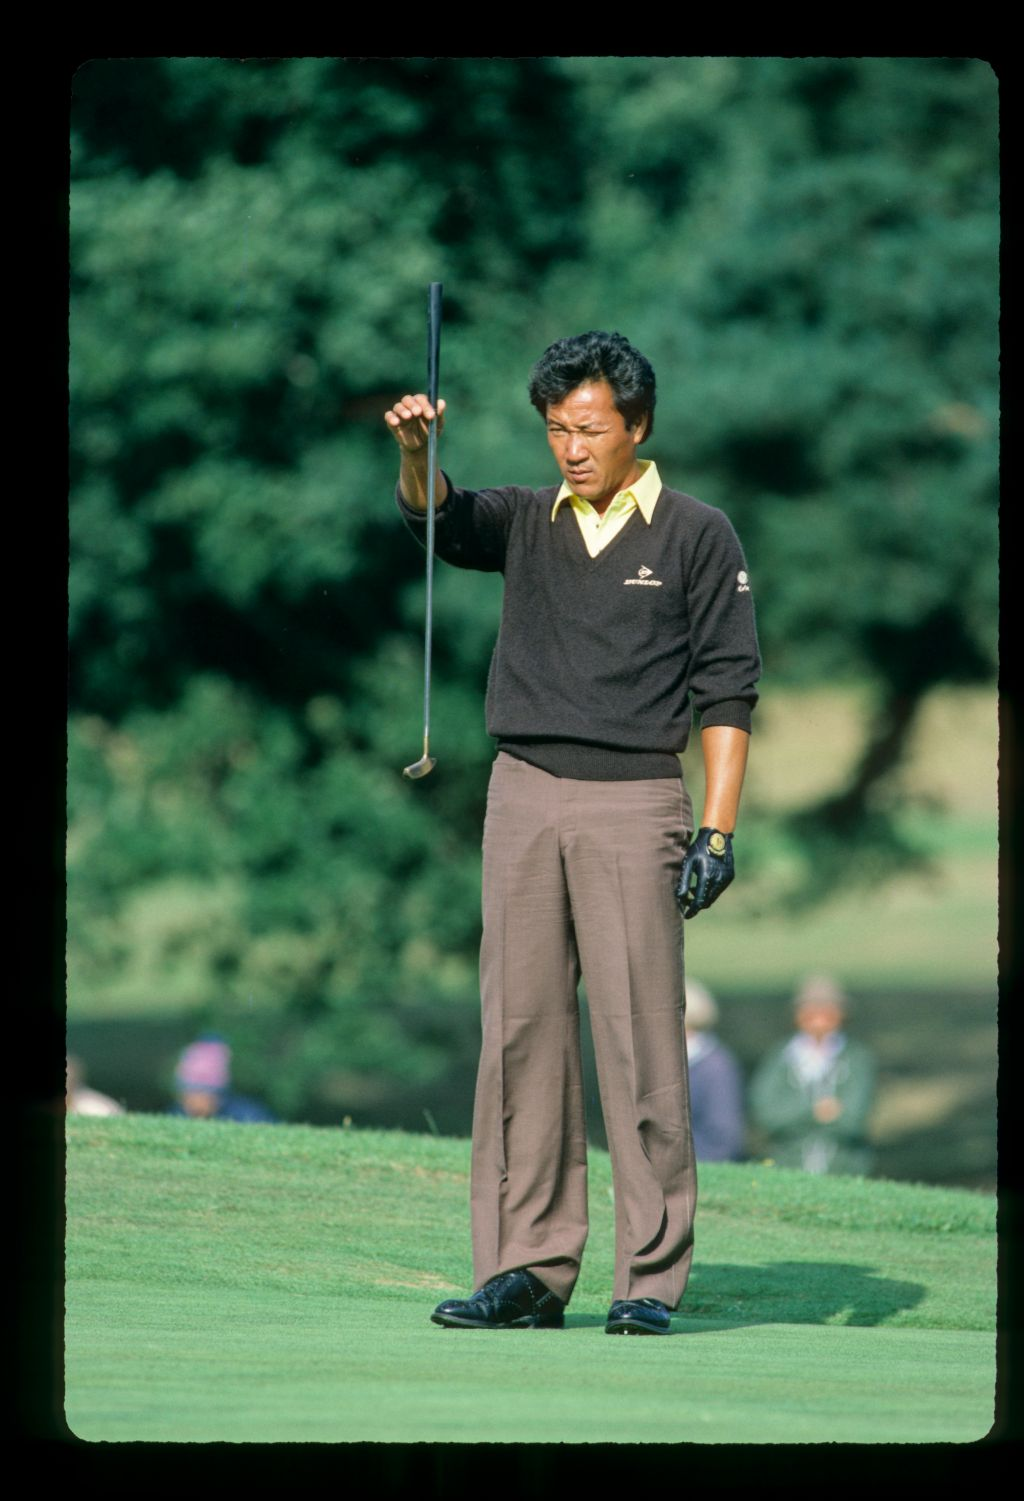 Isao Aoki plumb-lining a putt on his way to winning the 1983 European Open